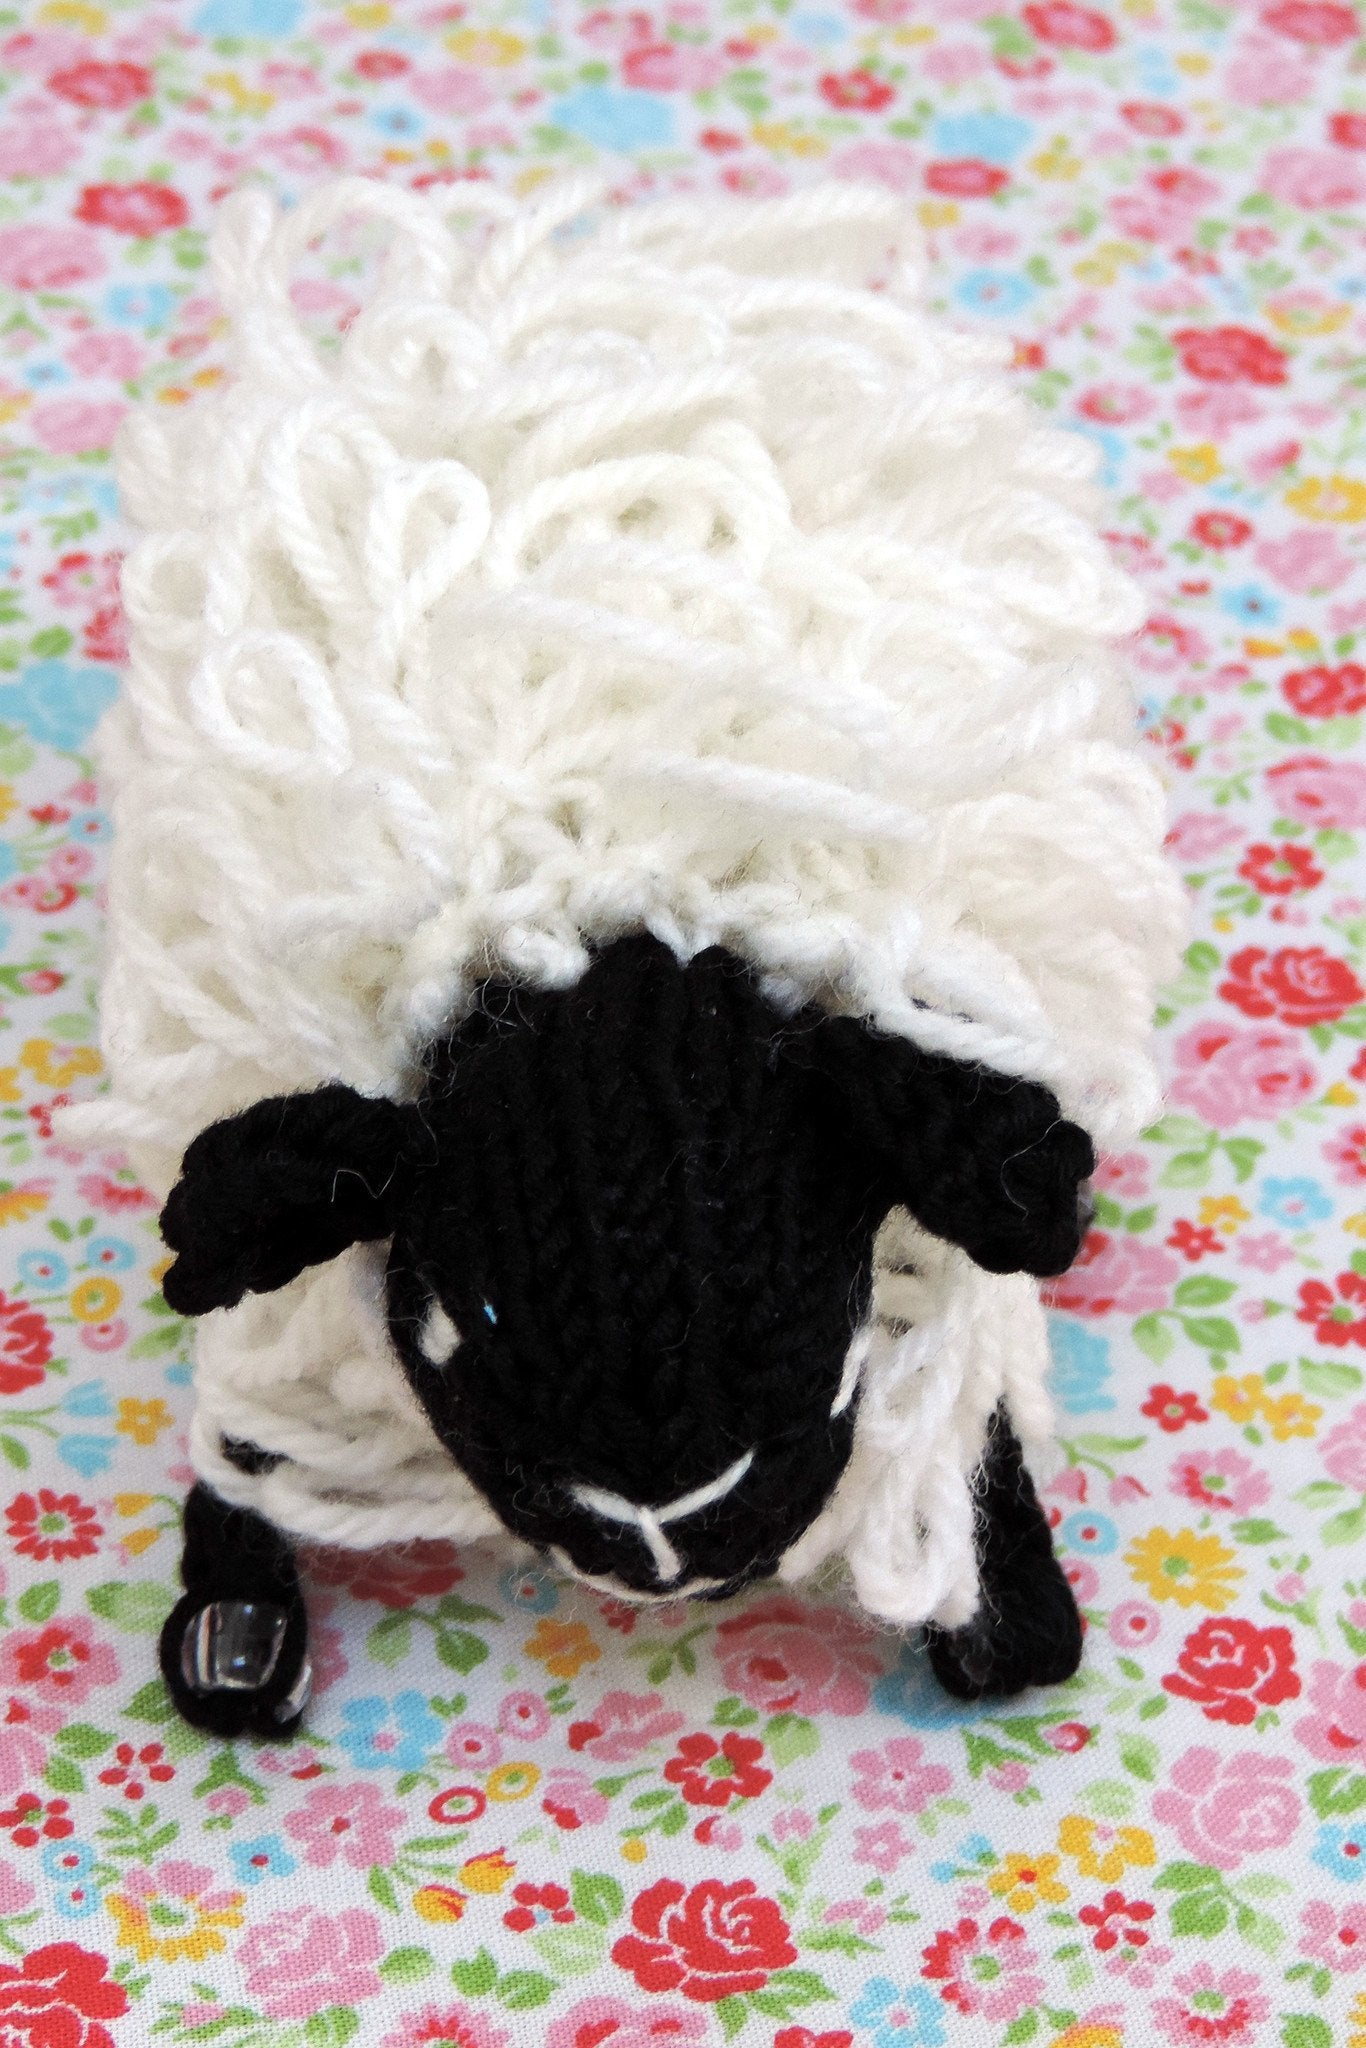 Blackface sheep toy knitting pattern the knitting network blackface sheep toy knitting pattern bankloansurffo Gallery